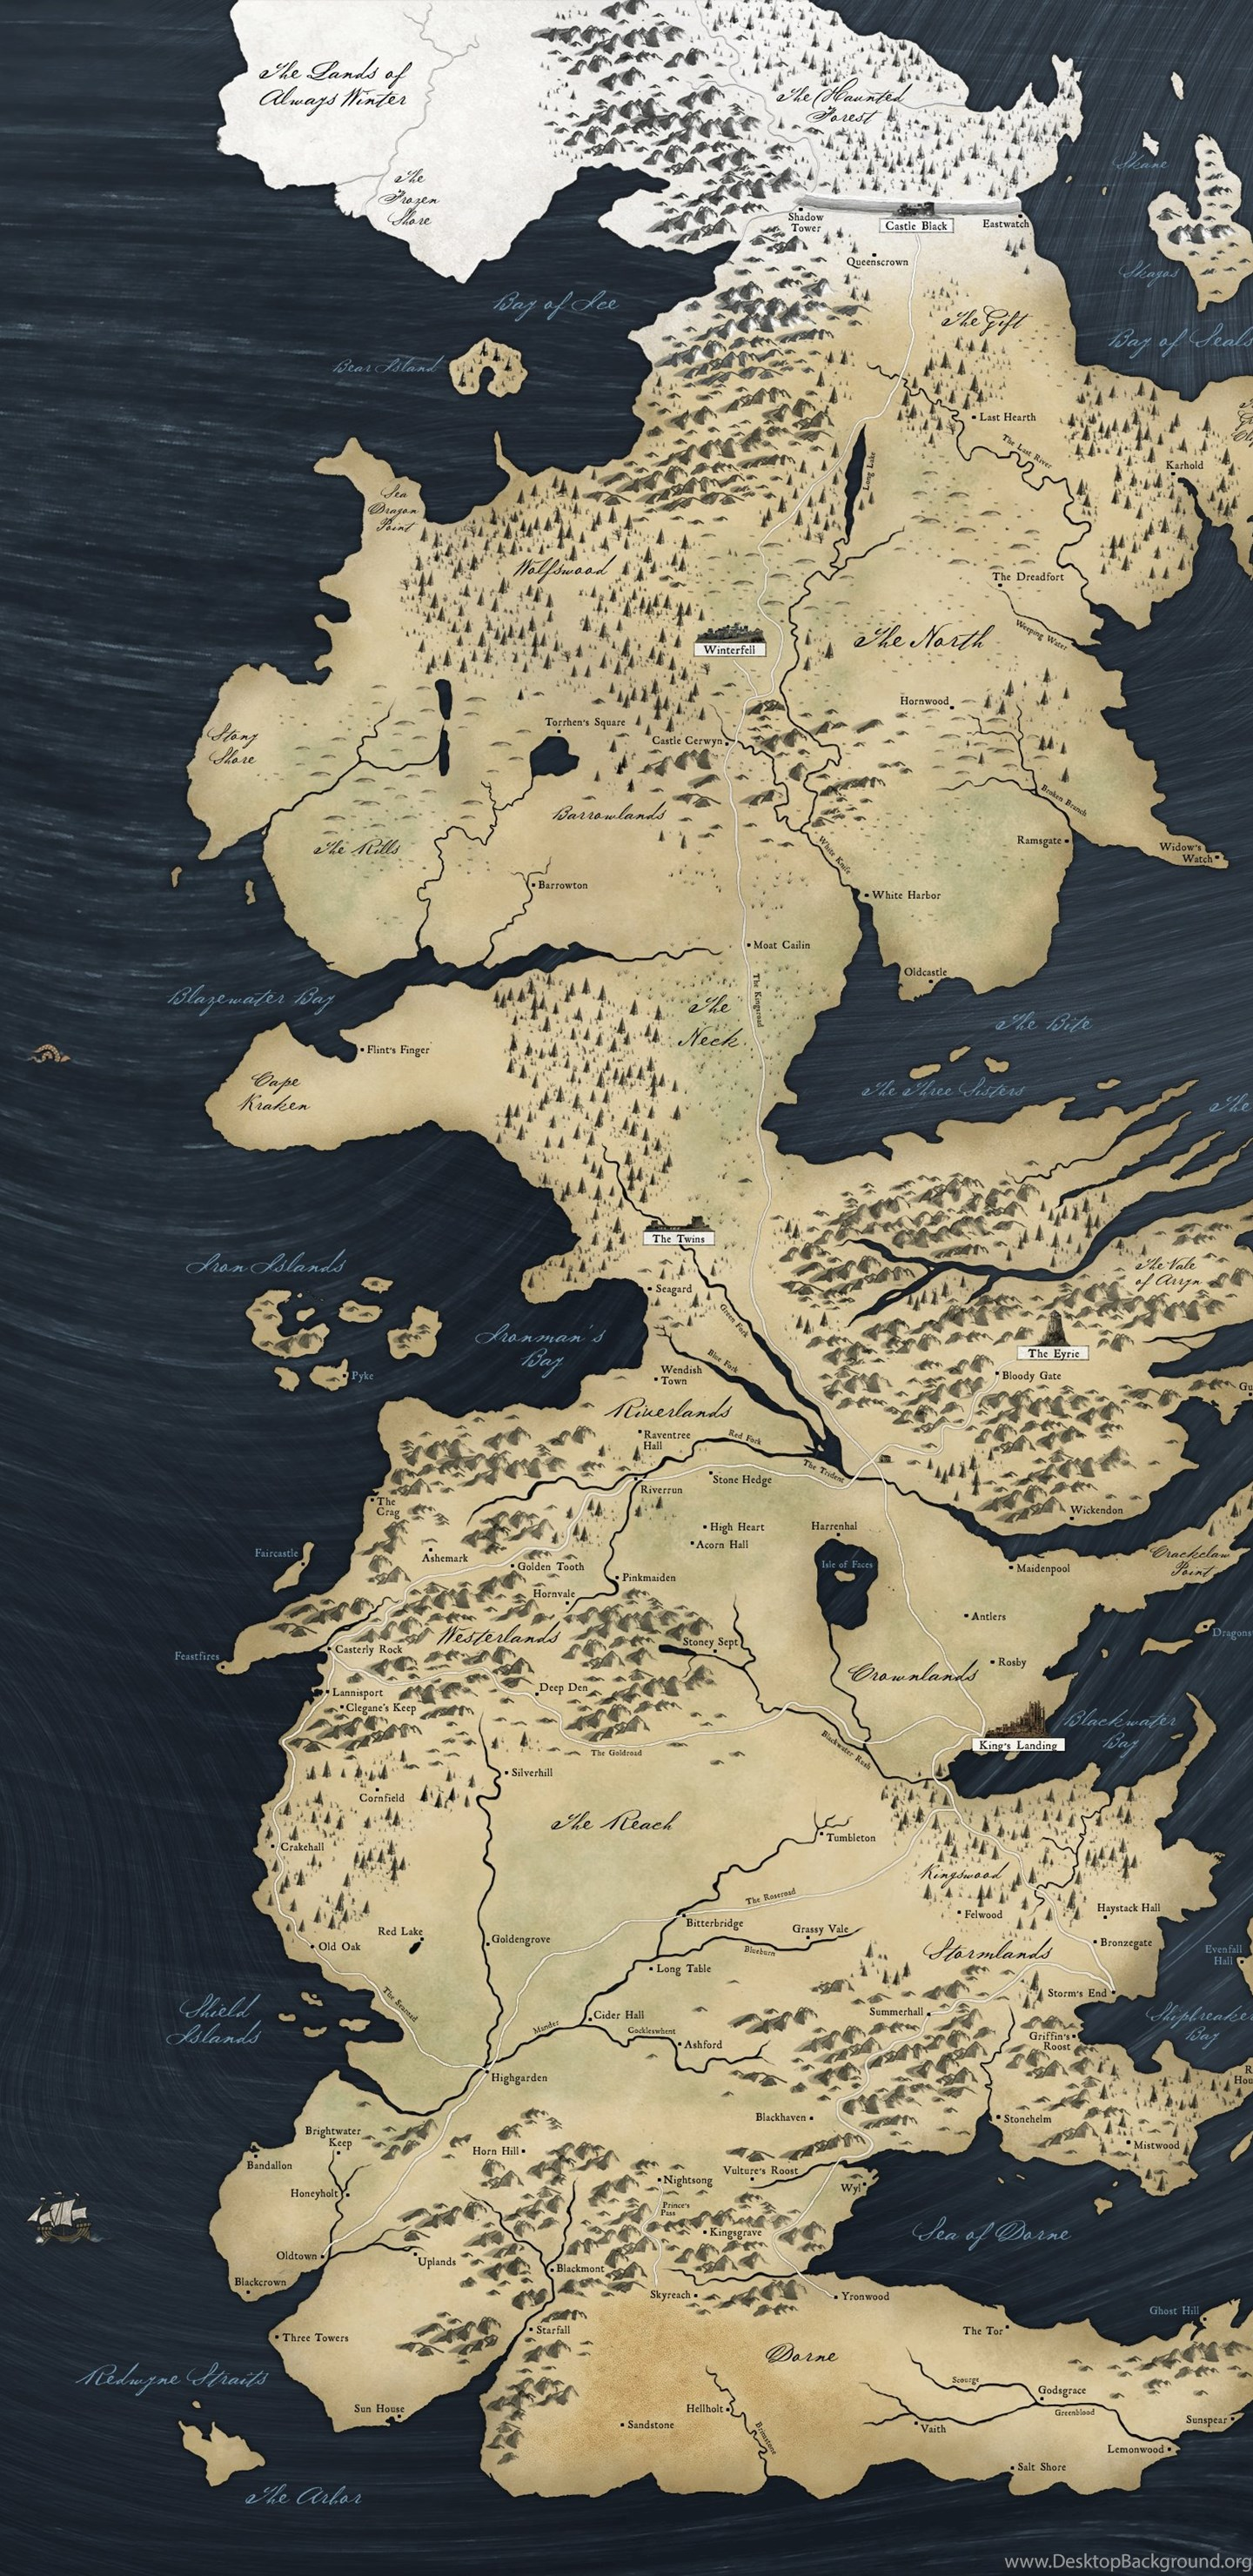 Game Of Thrones High Res Map Desktop Background Game Of Thrones Map High Res on tamriel map high res, game of thrones artwork, game of thrones screensaver, westeros map high res, united states map high res, game of thrones ice wall prop, game of thrones house sigils, game of thrones art, pillars of eternity map high res, the crew map high res,